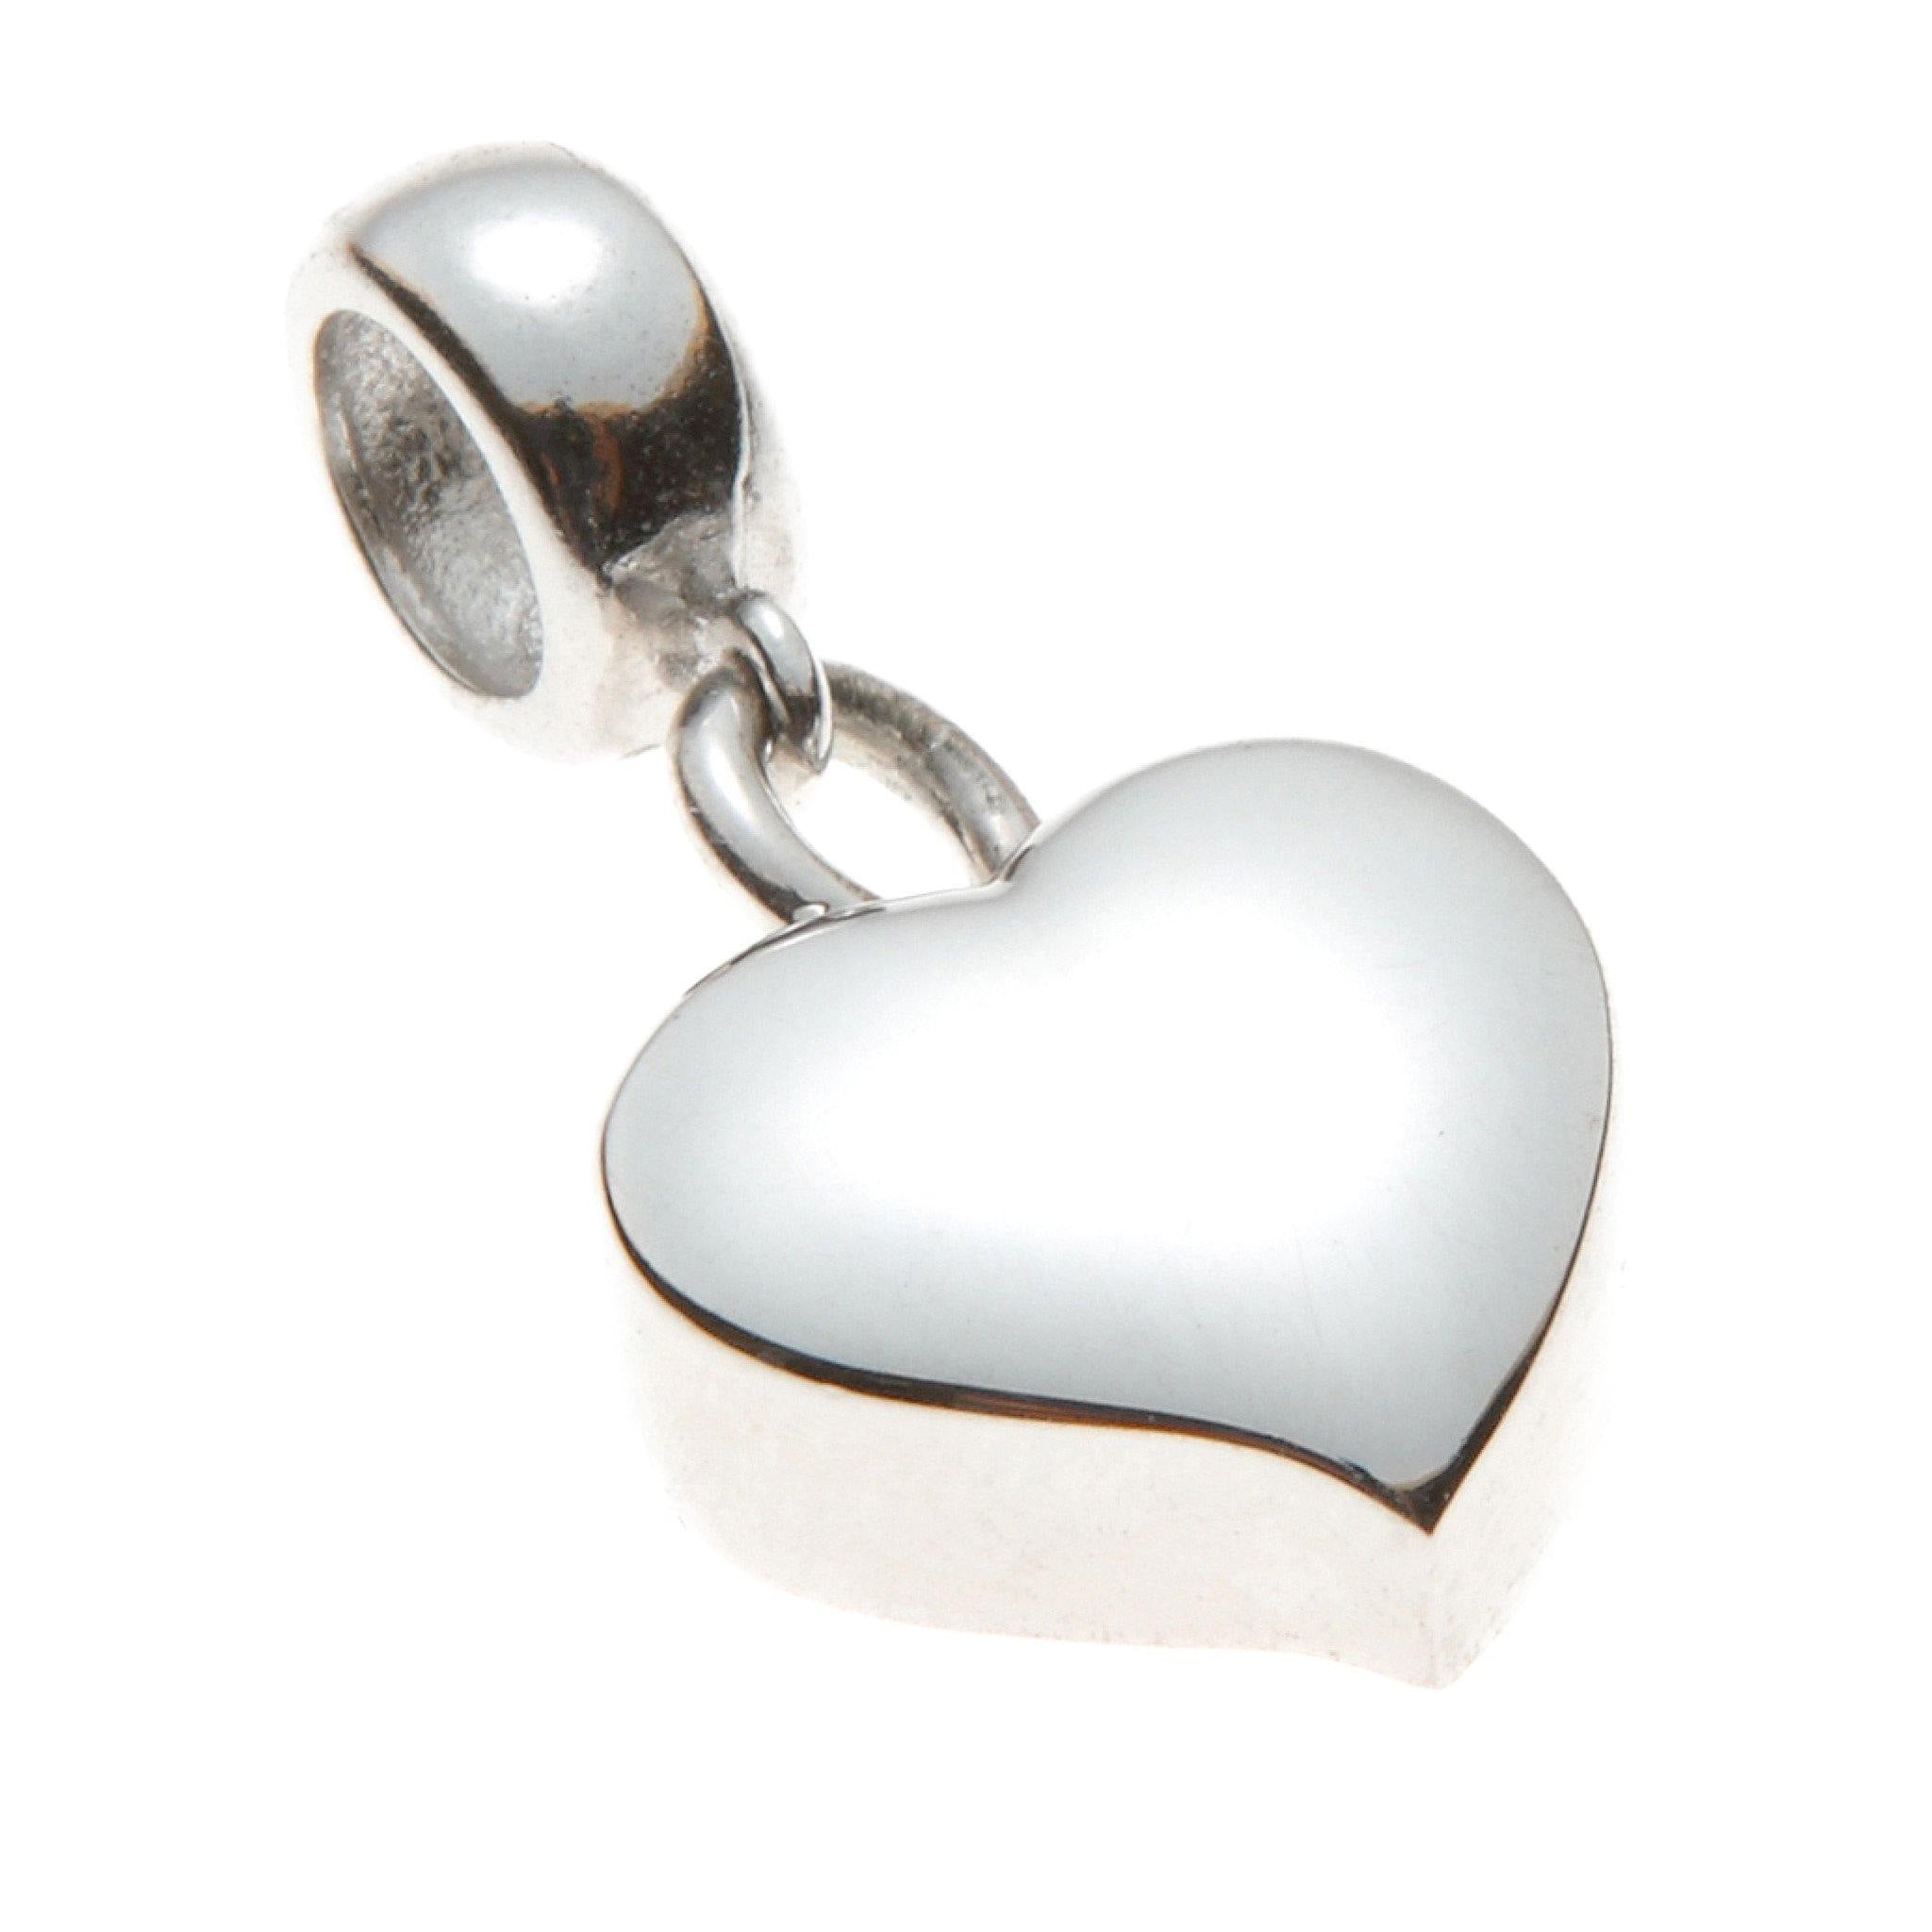 Mayfair Charm Heart Cremation Ashes Pendant 925 Silver - Urns UK